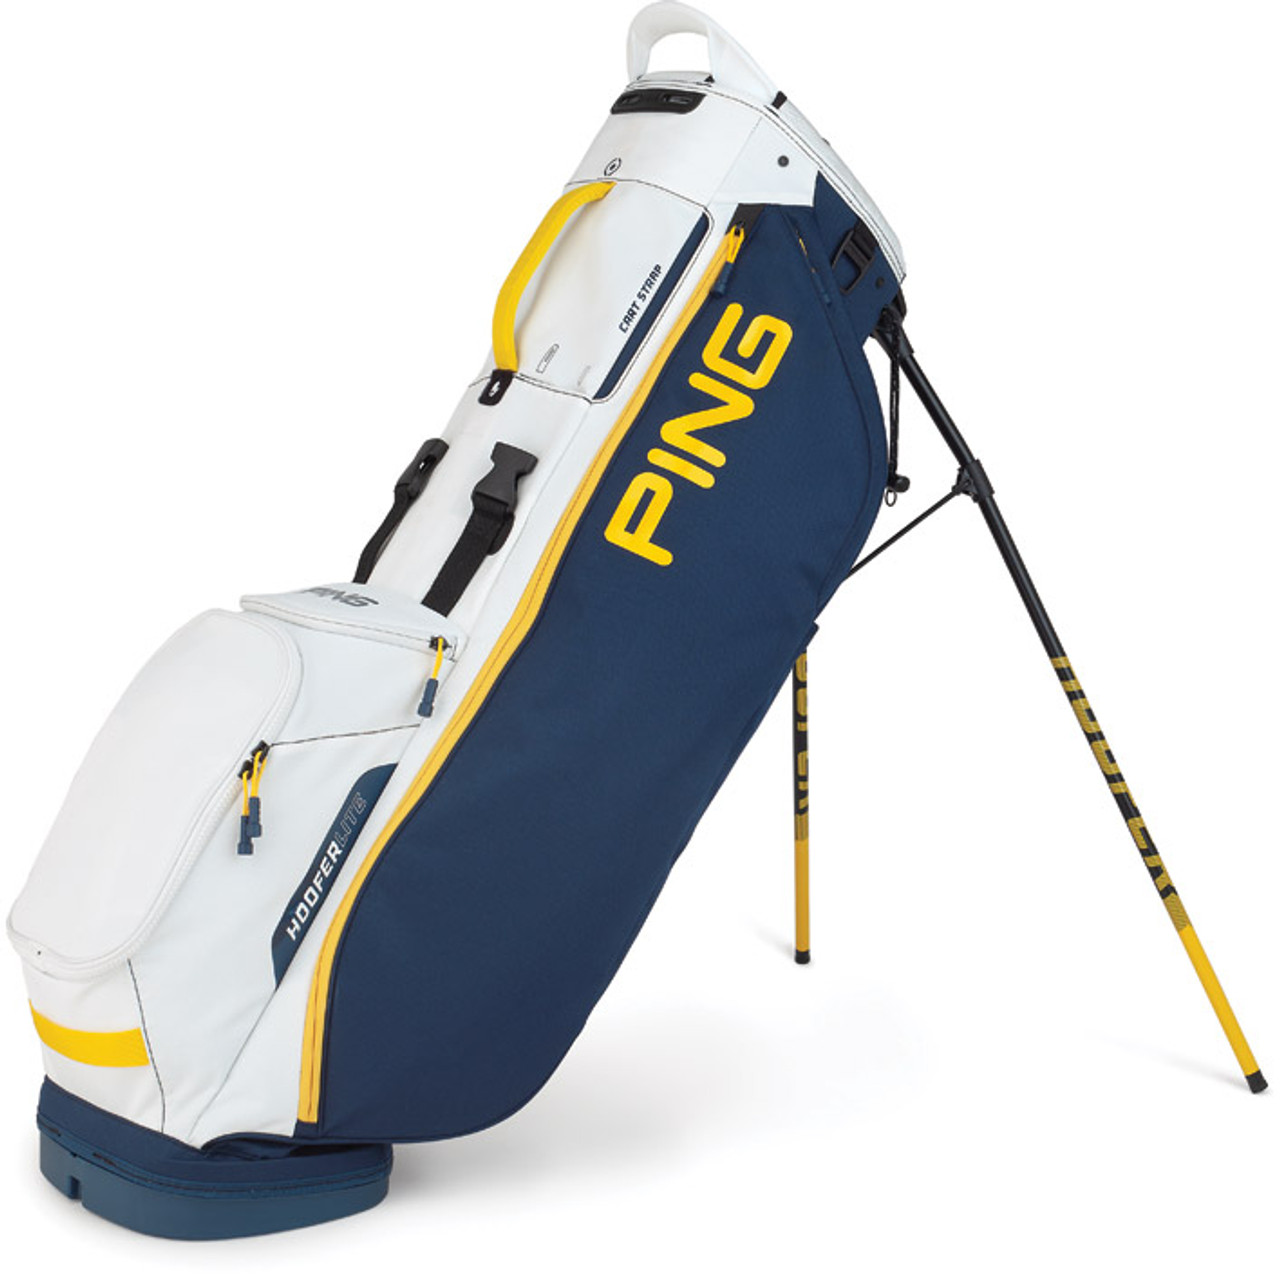 Ping Hoofer Lite Personalized Stand Bags - Navy / White / Yellow